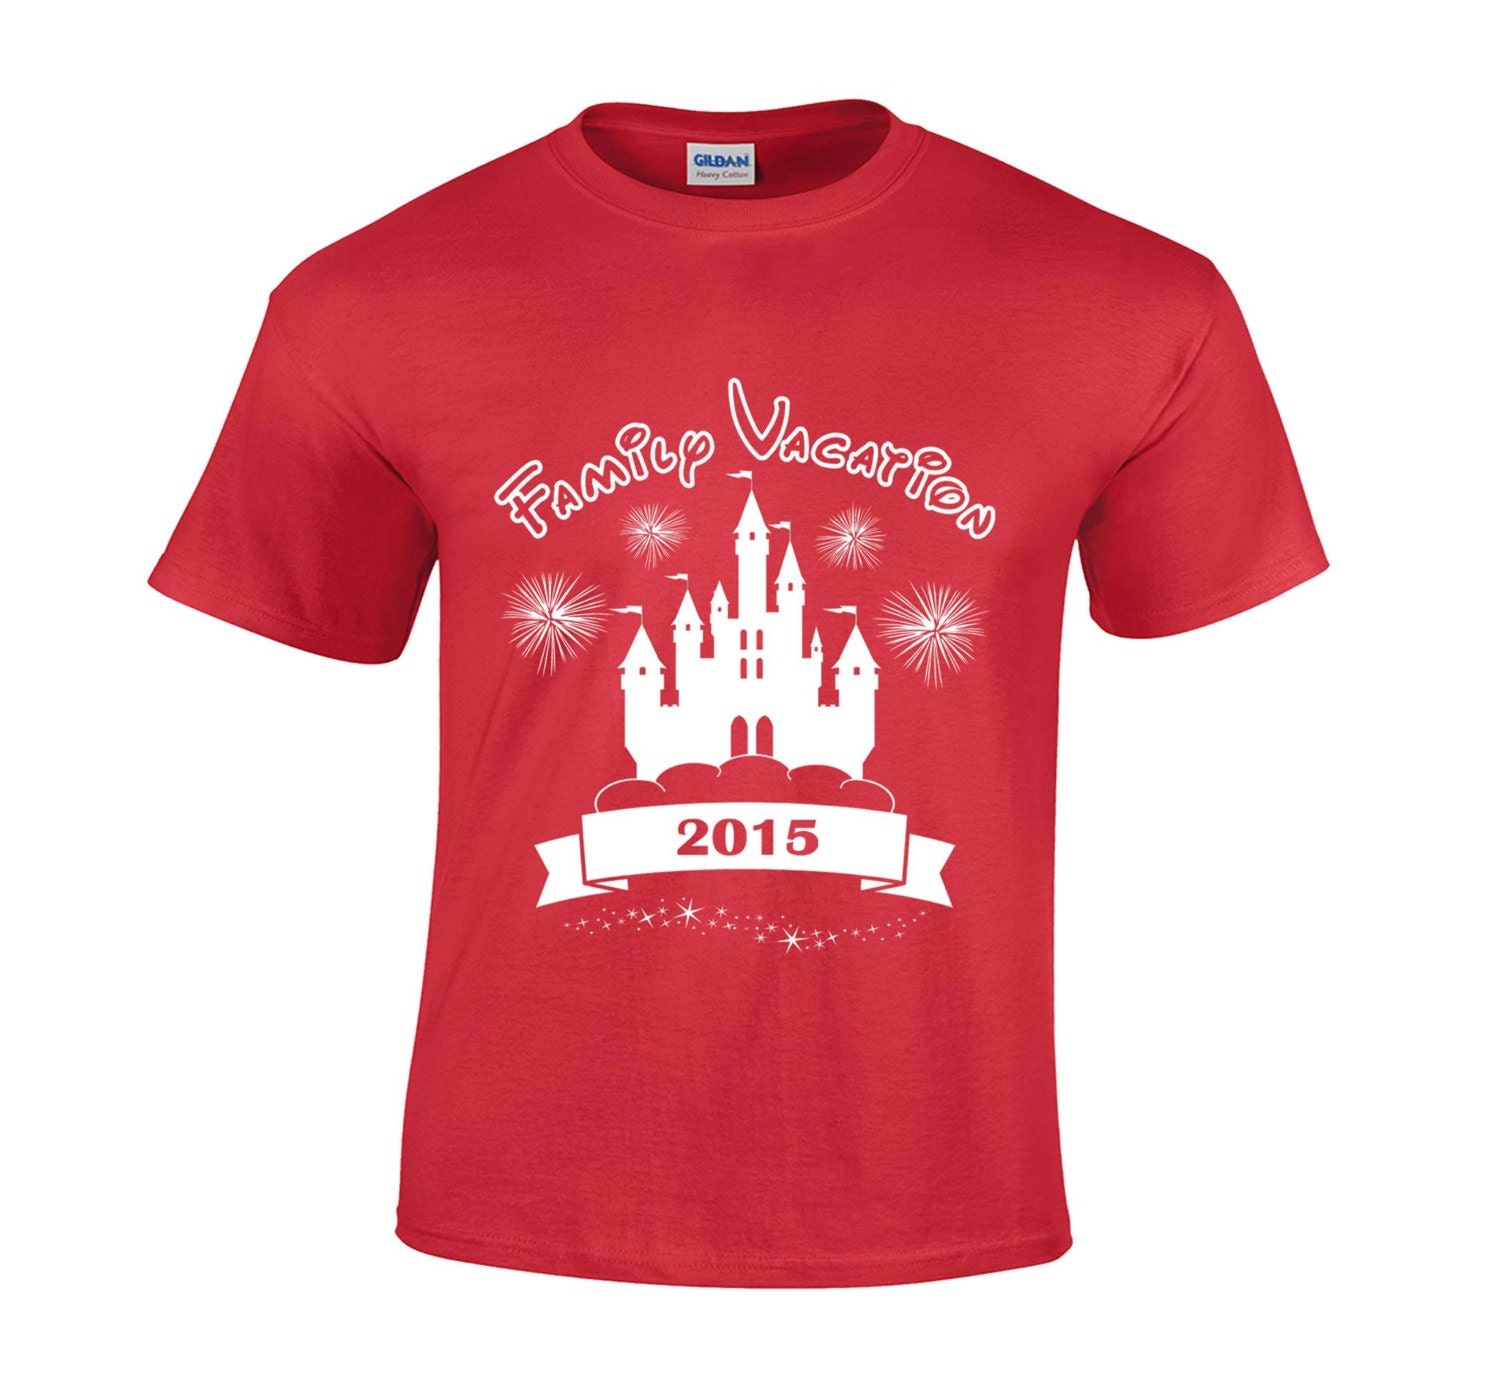 2015 disney family vacation tshirts by theperfectnumber